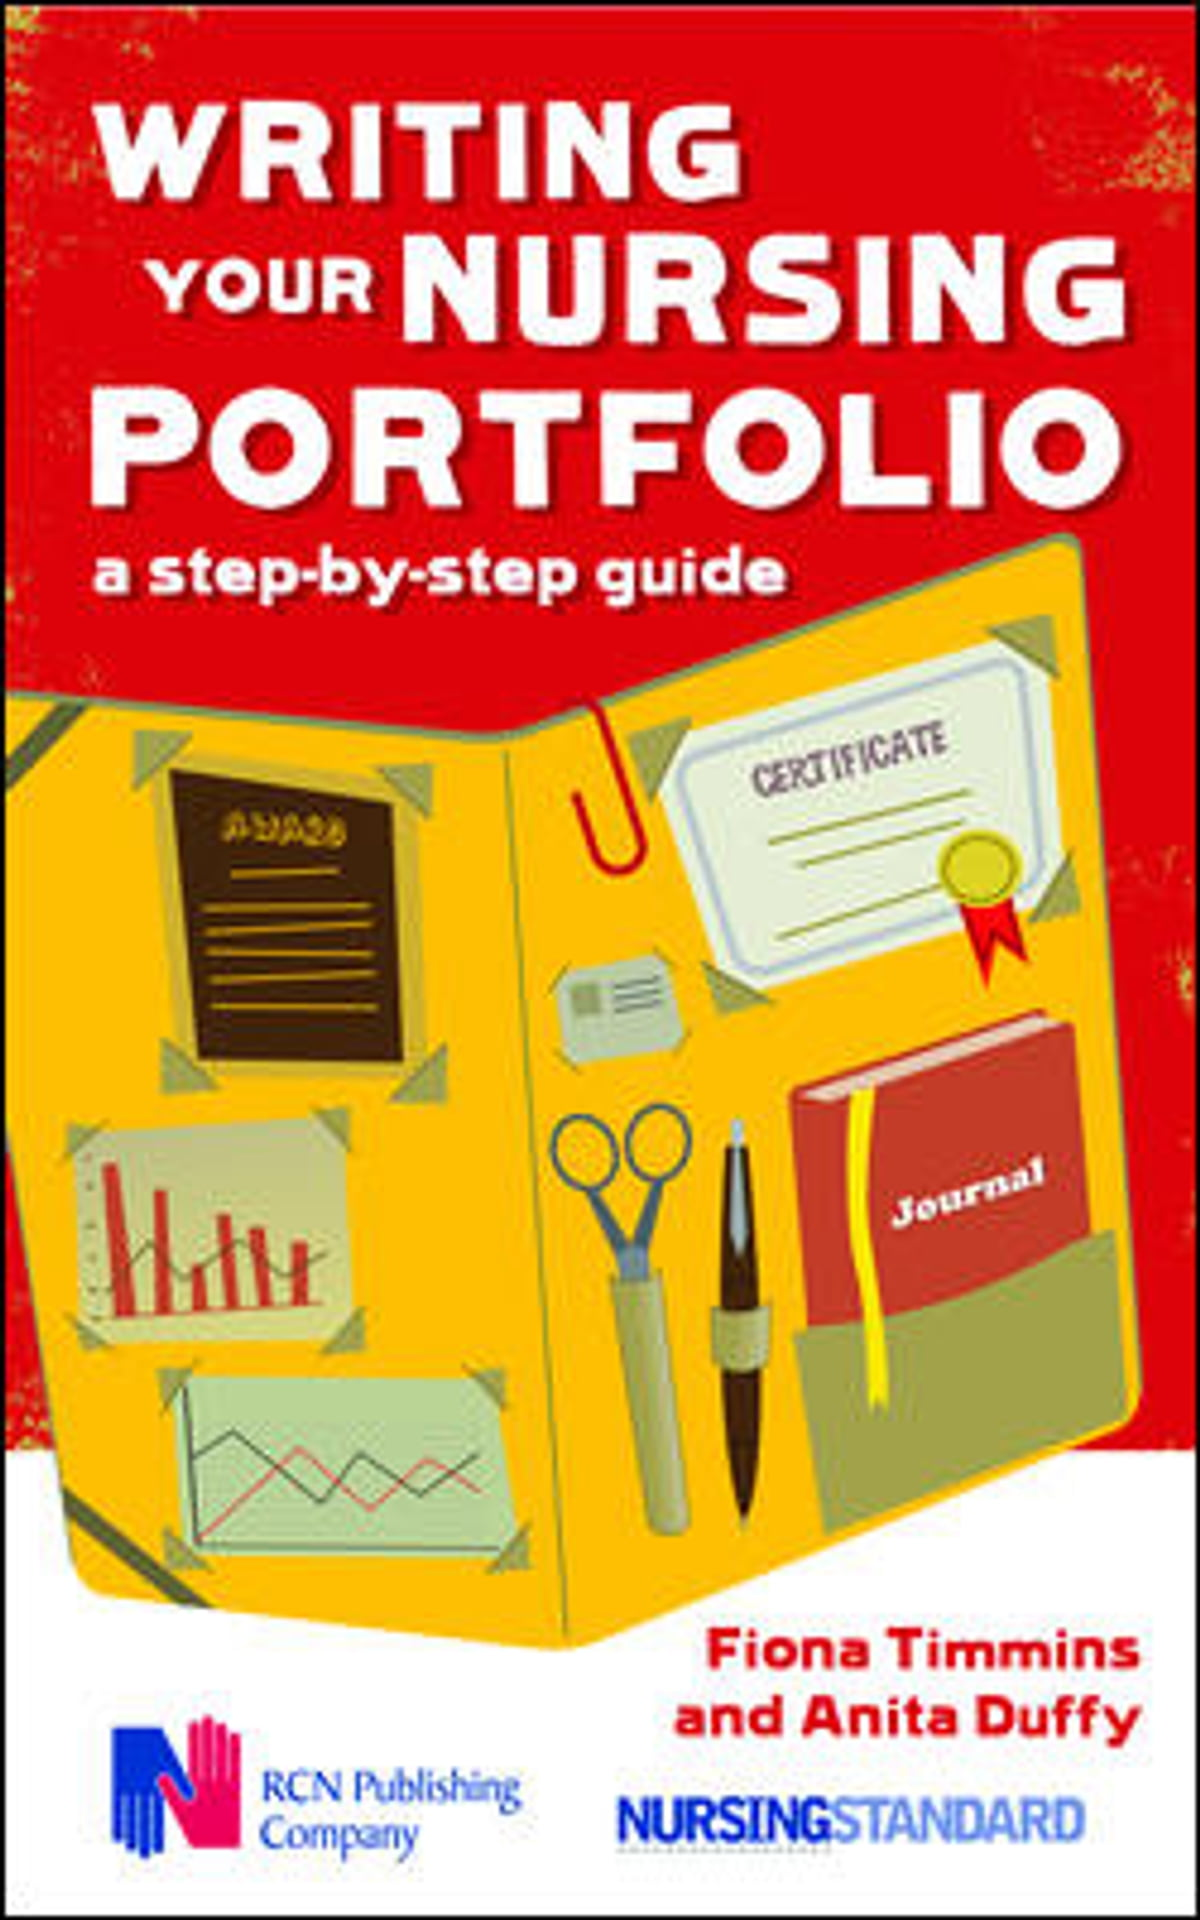 Writing Your Nursing Portfolio: A Step-By-Step Guide eBook by Fiona Timmins  - 9780335242856 | Rakuten Kobo